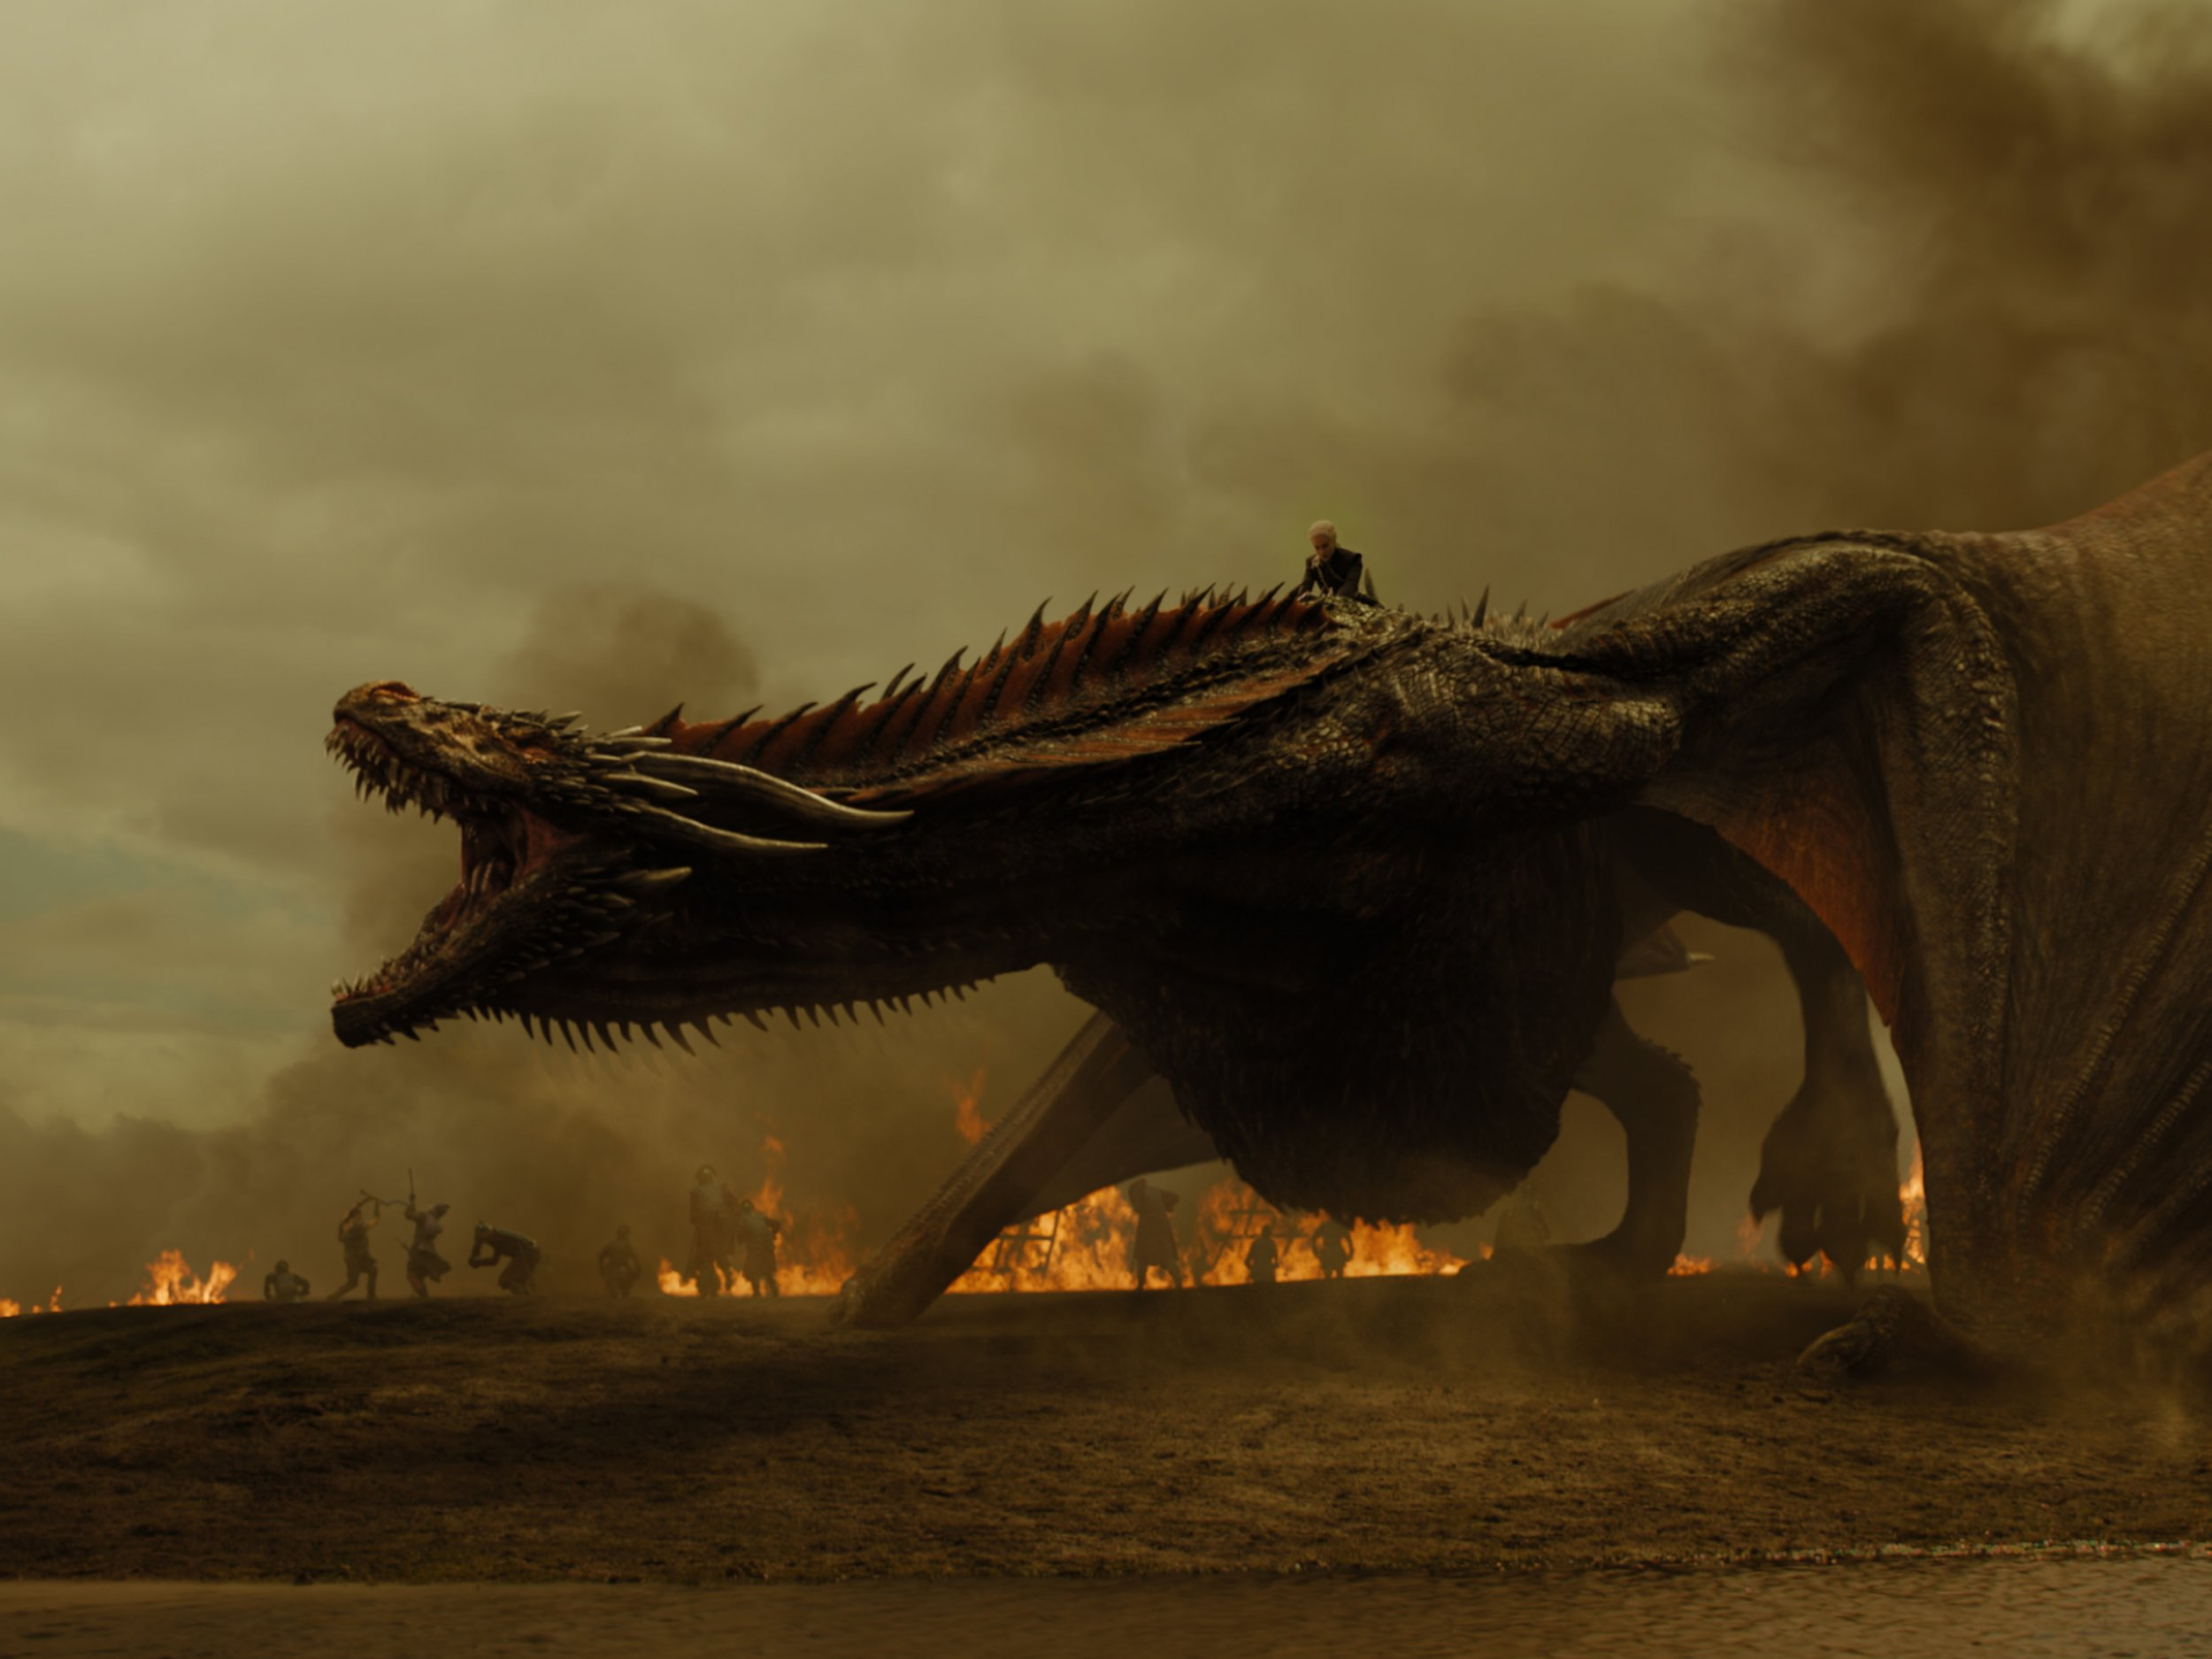 drogon-spoils-war.jpg